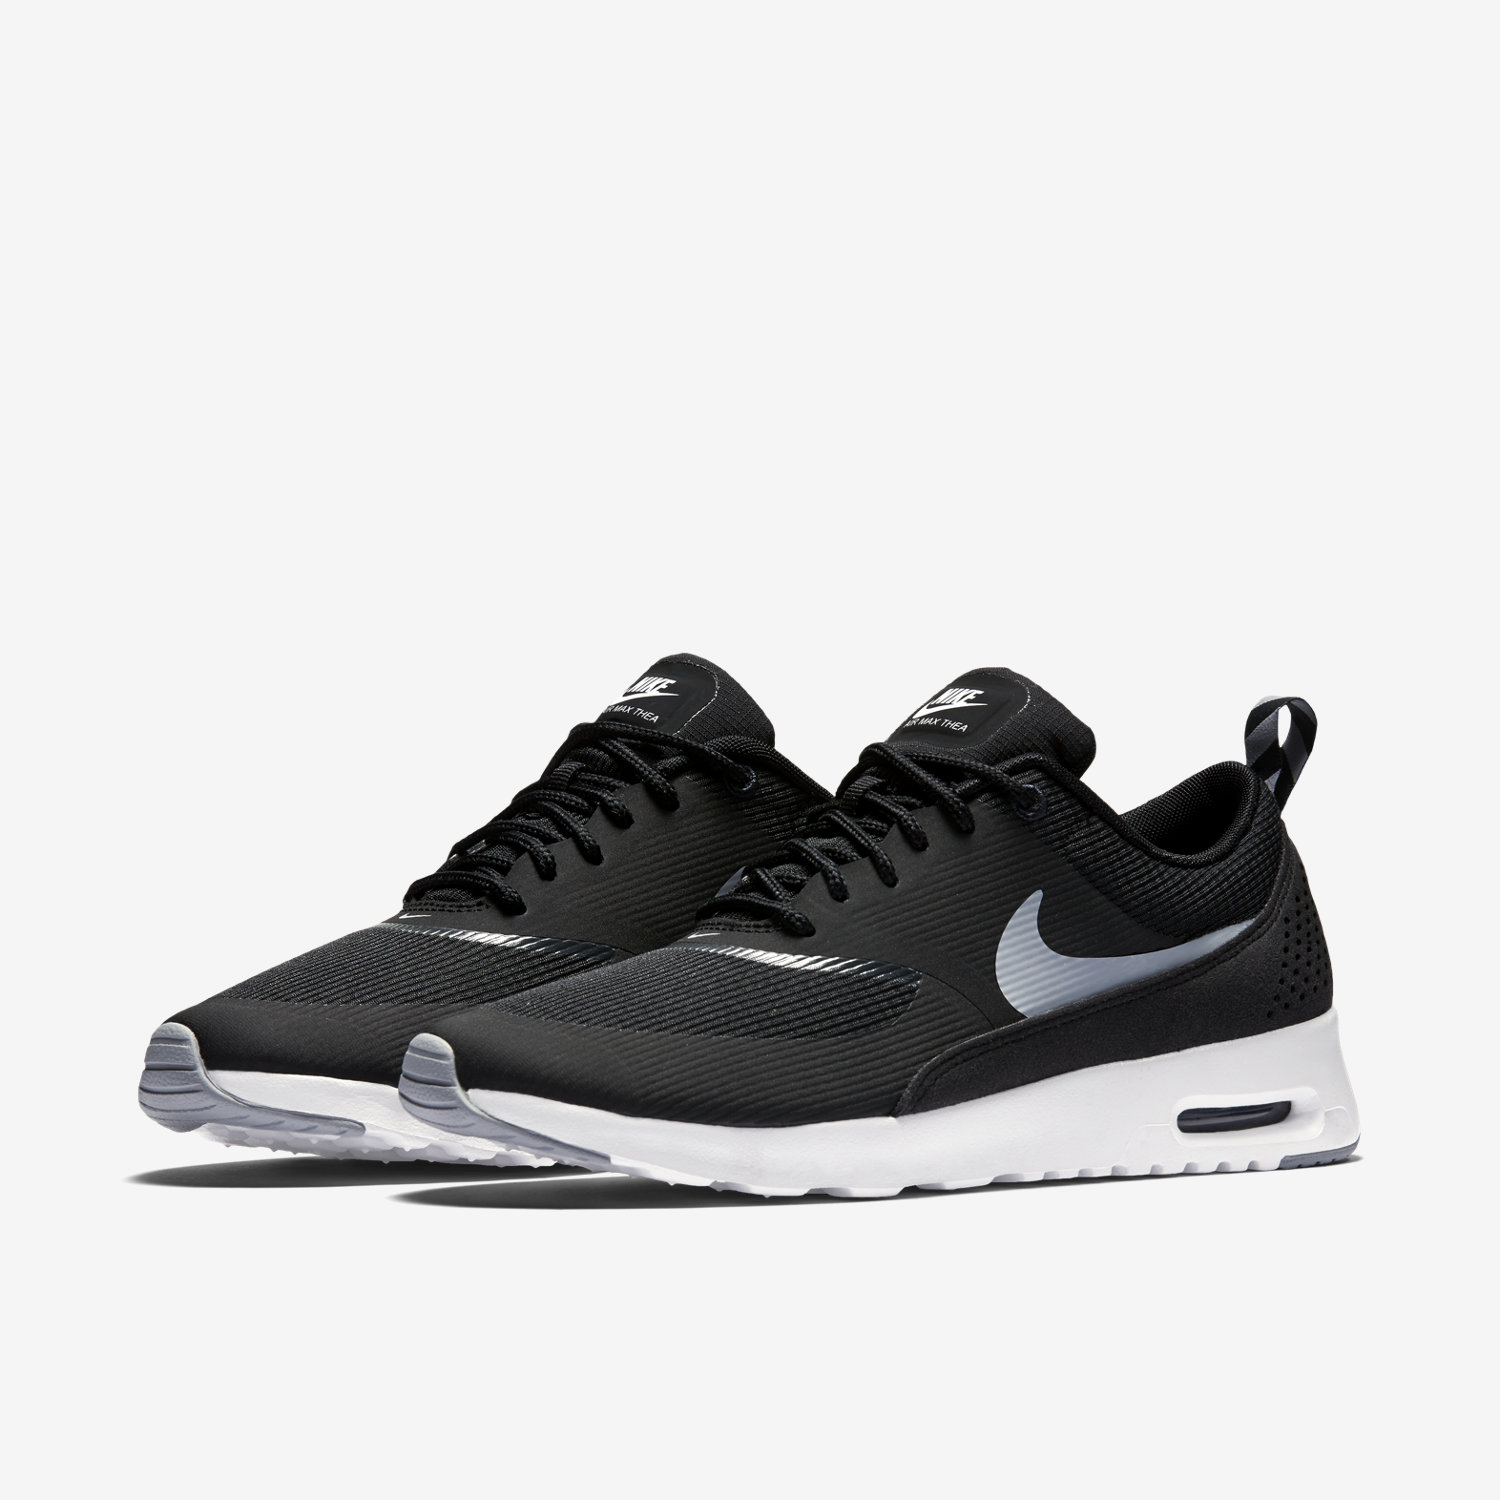 nike air max 1 litre chaussures doigts de pieds. Black Bedroom Furniture Sets. Home Design Ideas